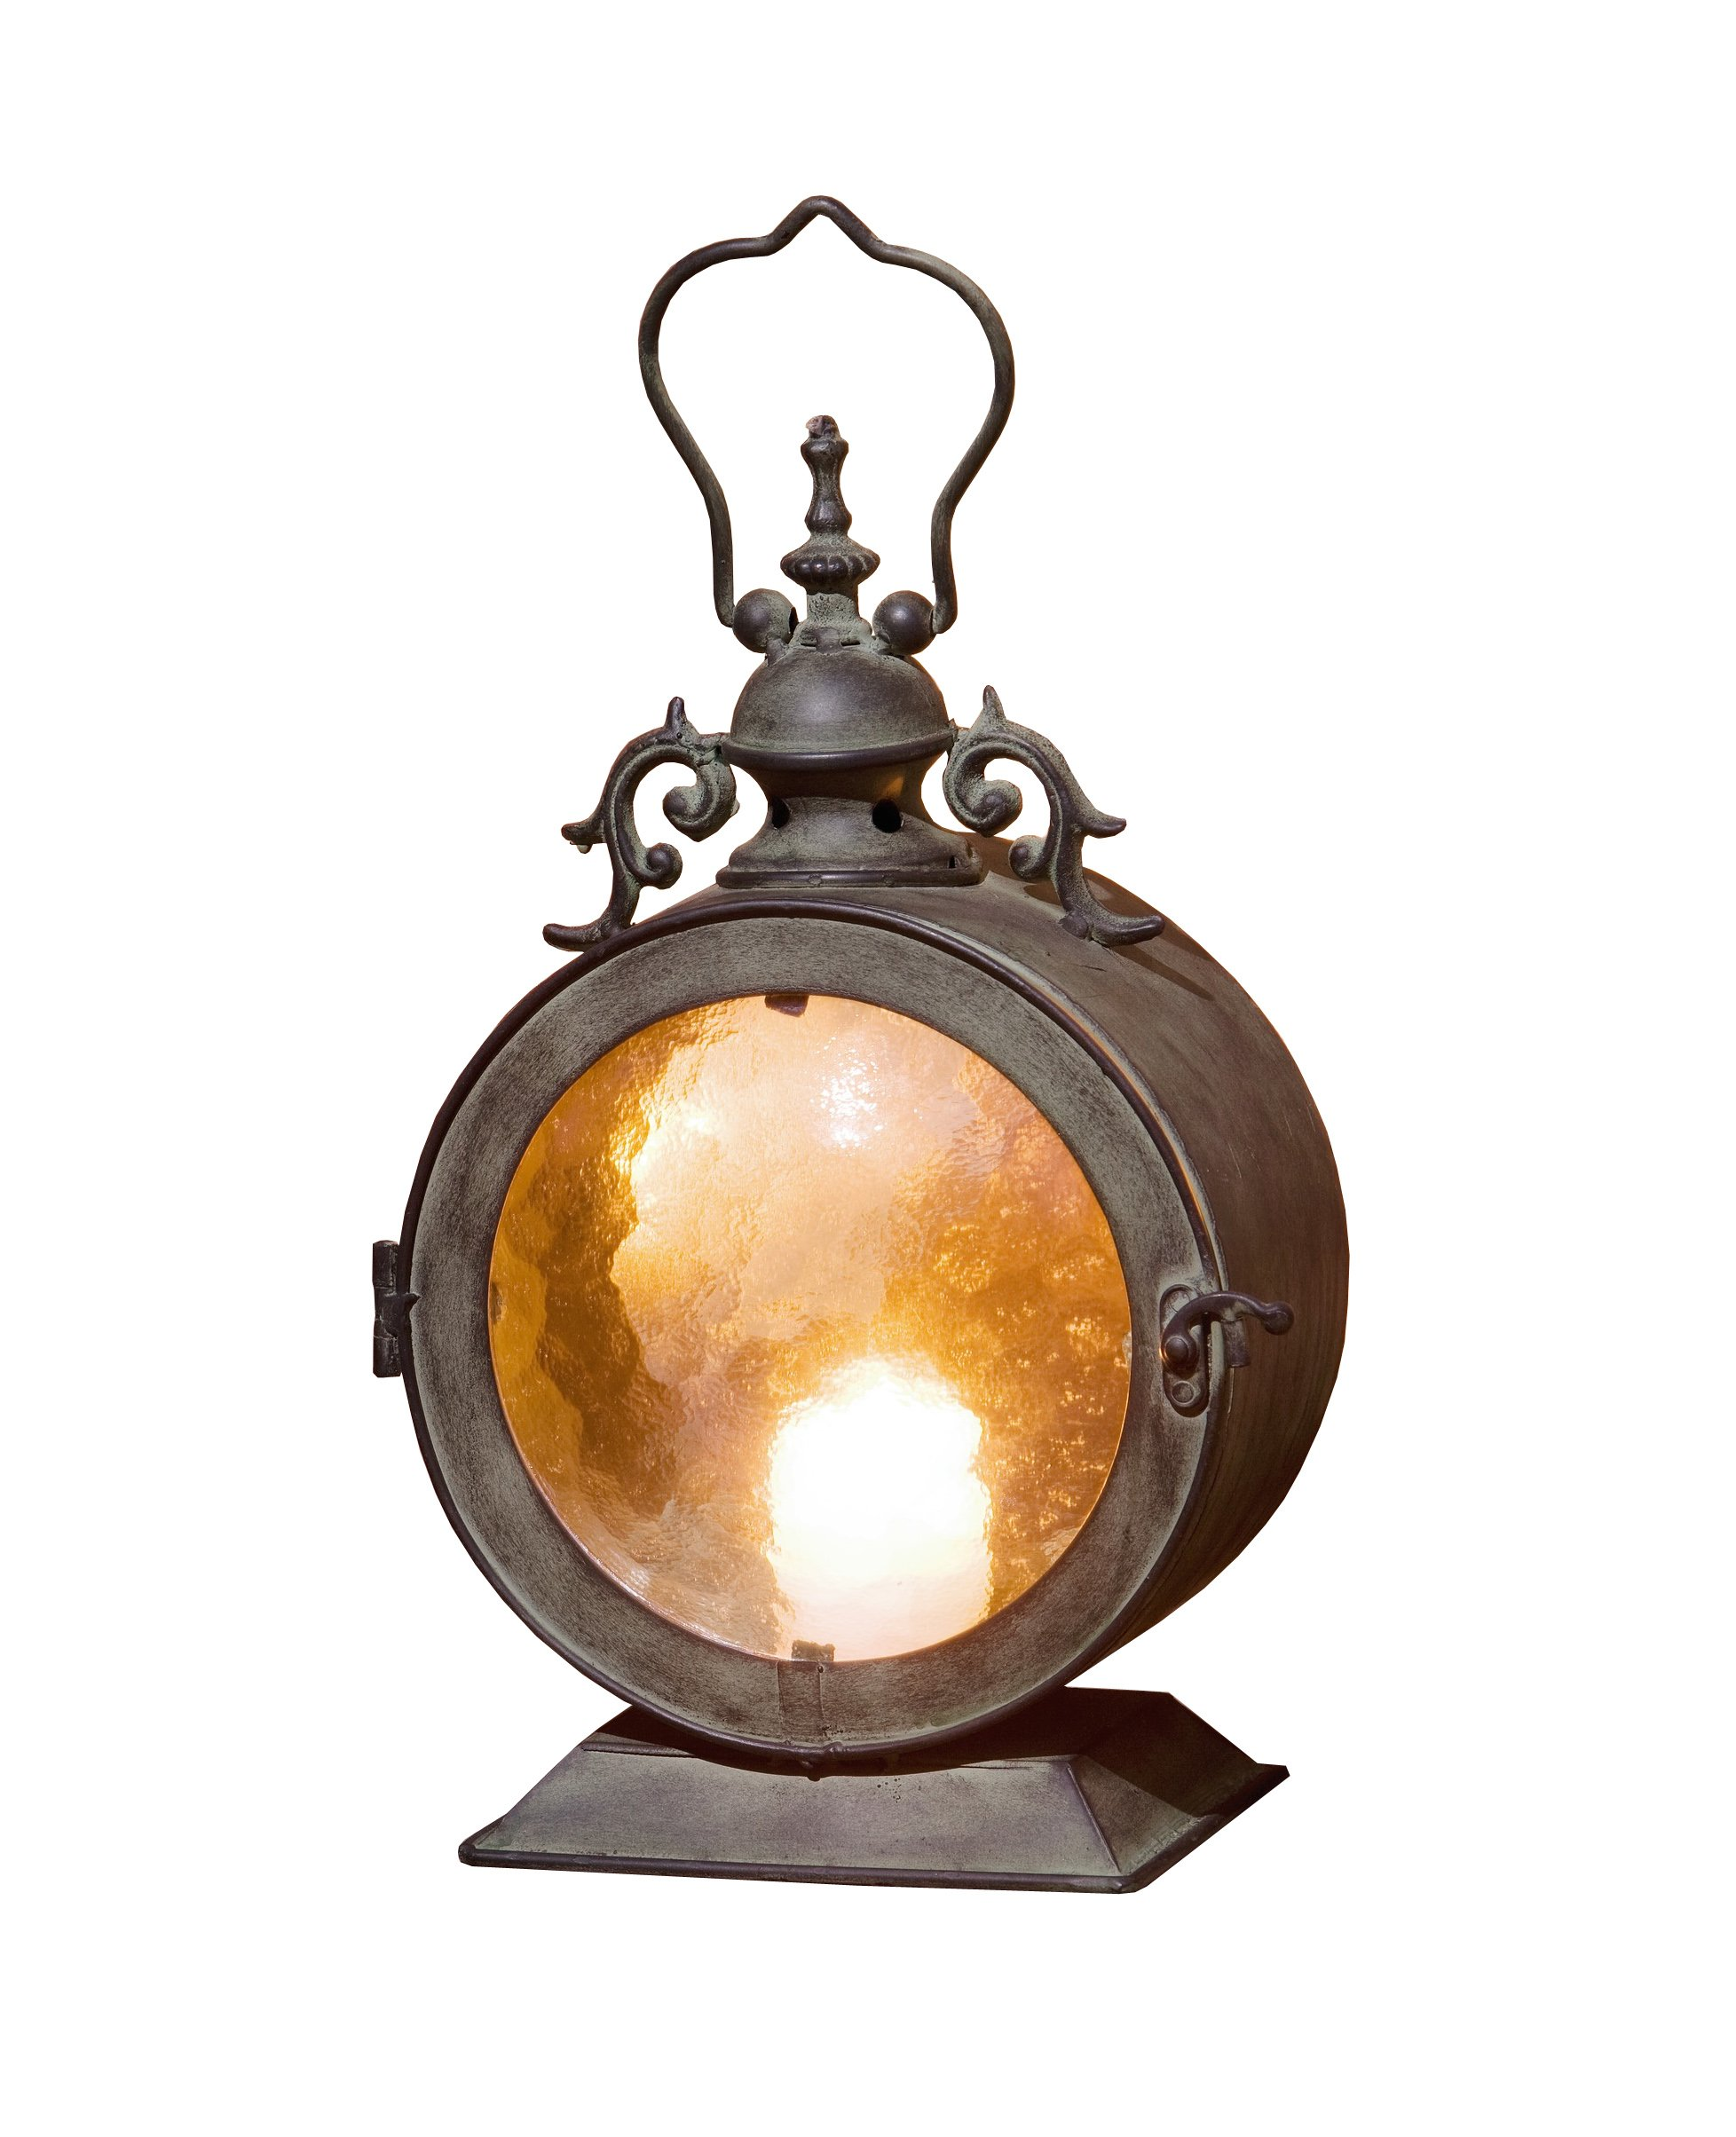 PierSurplus CL220987 Metal Round Hanging Candle Lantern with Curved Glass Insert